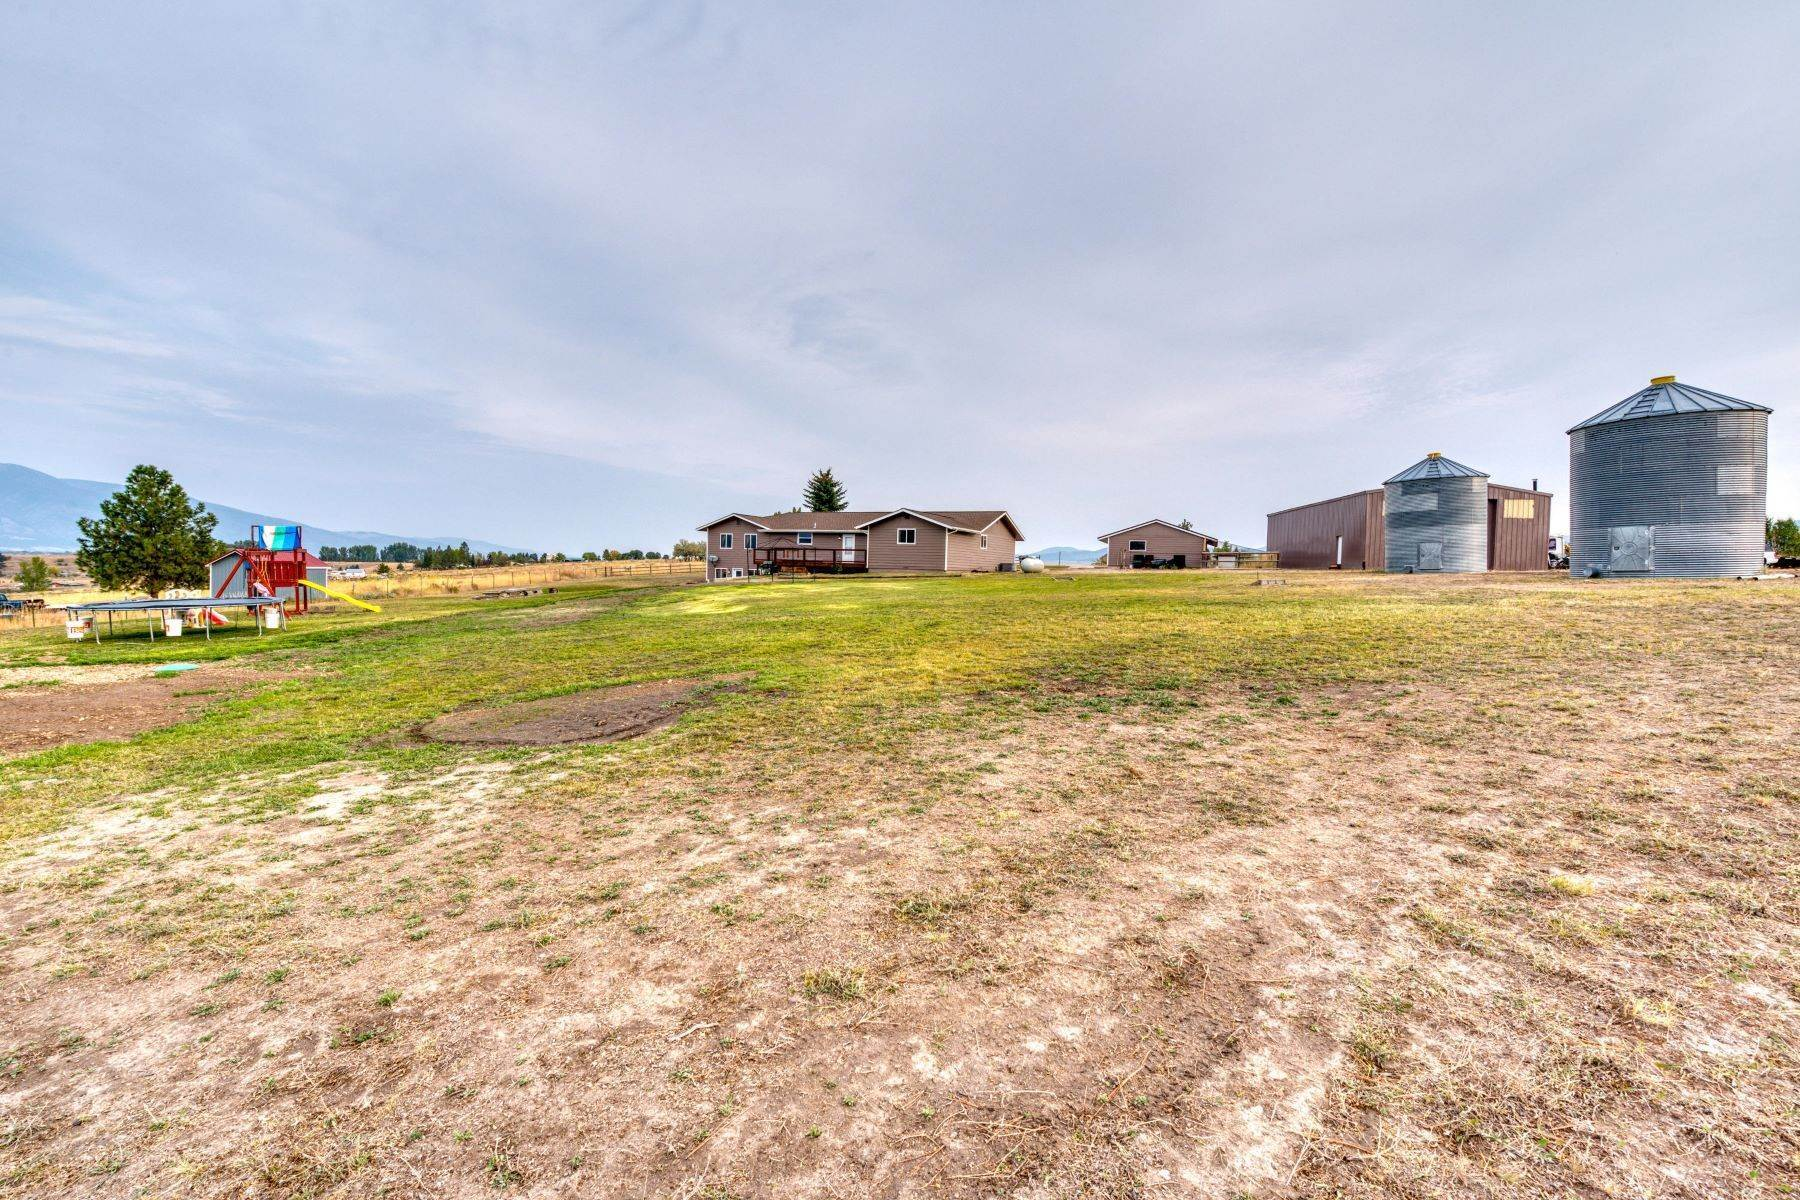 Single Family Homes for Sale at Rural Living with Views 4031 Sunnyside Cemetery Road Stevensville, Montana 59870 United States